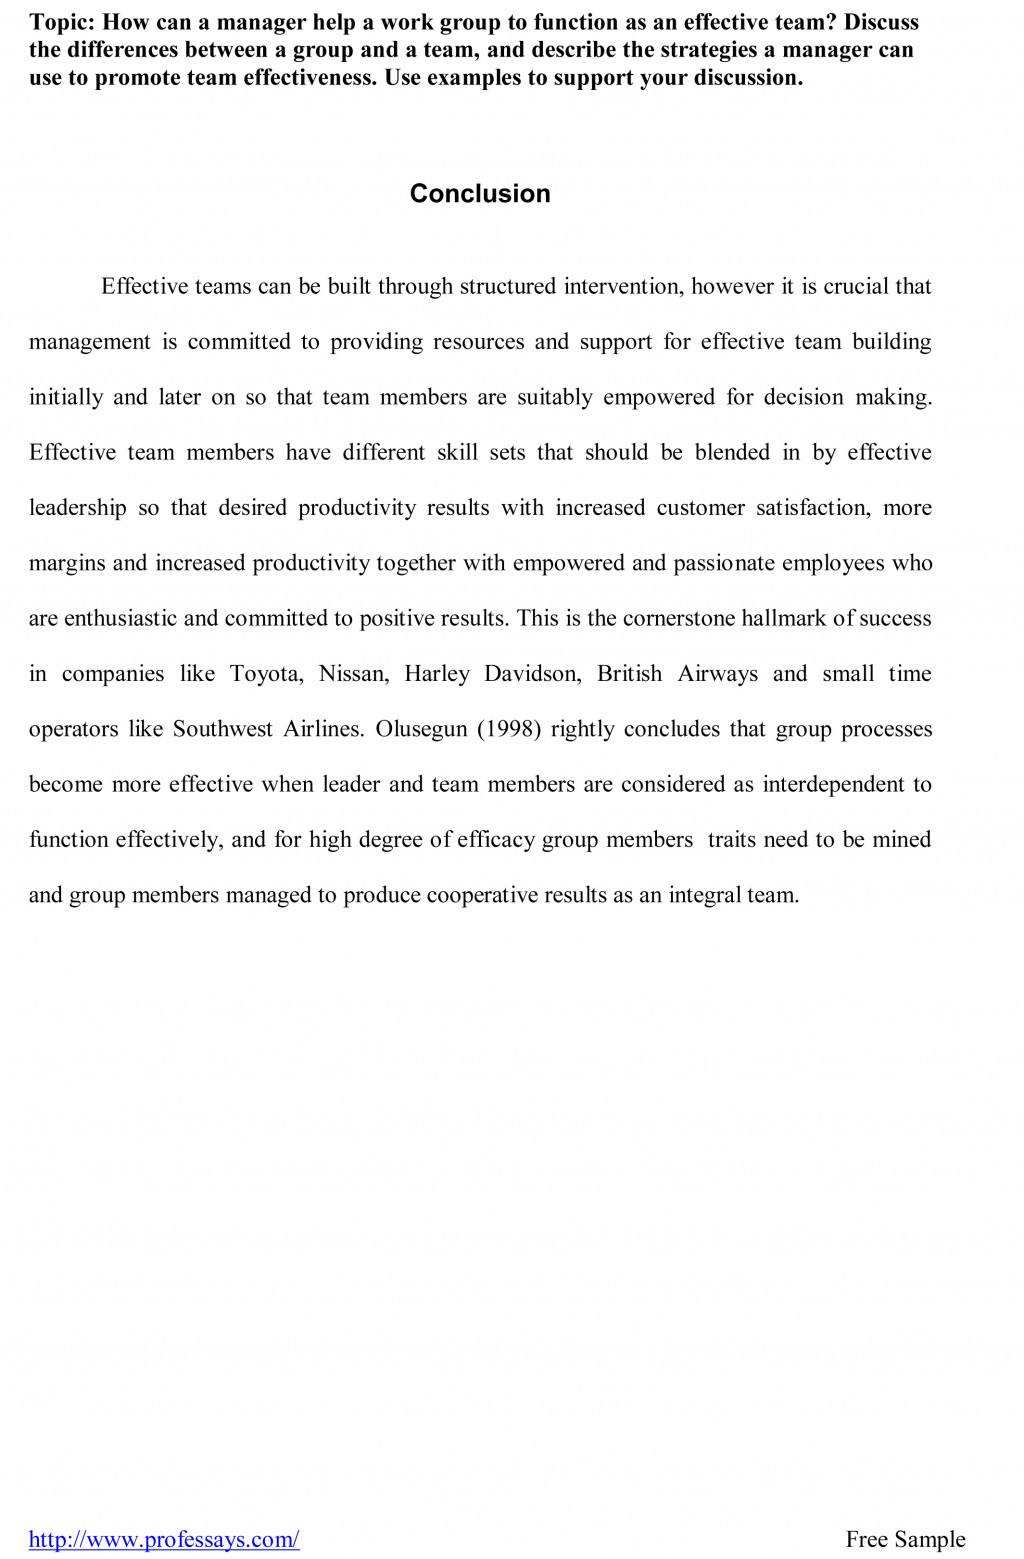 001 Example Of Research Paper Conclusion Sample For Astounding Conclusions In About Smoking Large